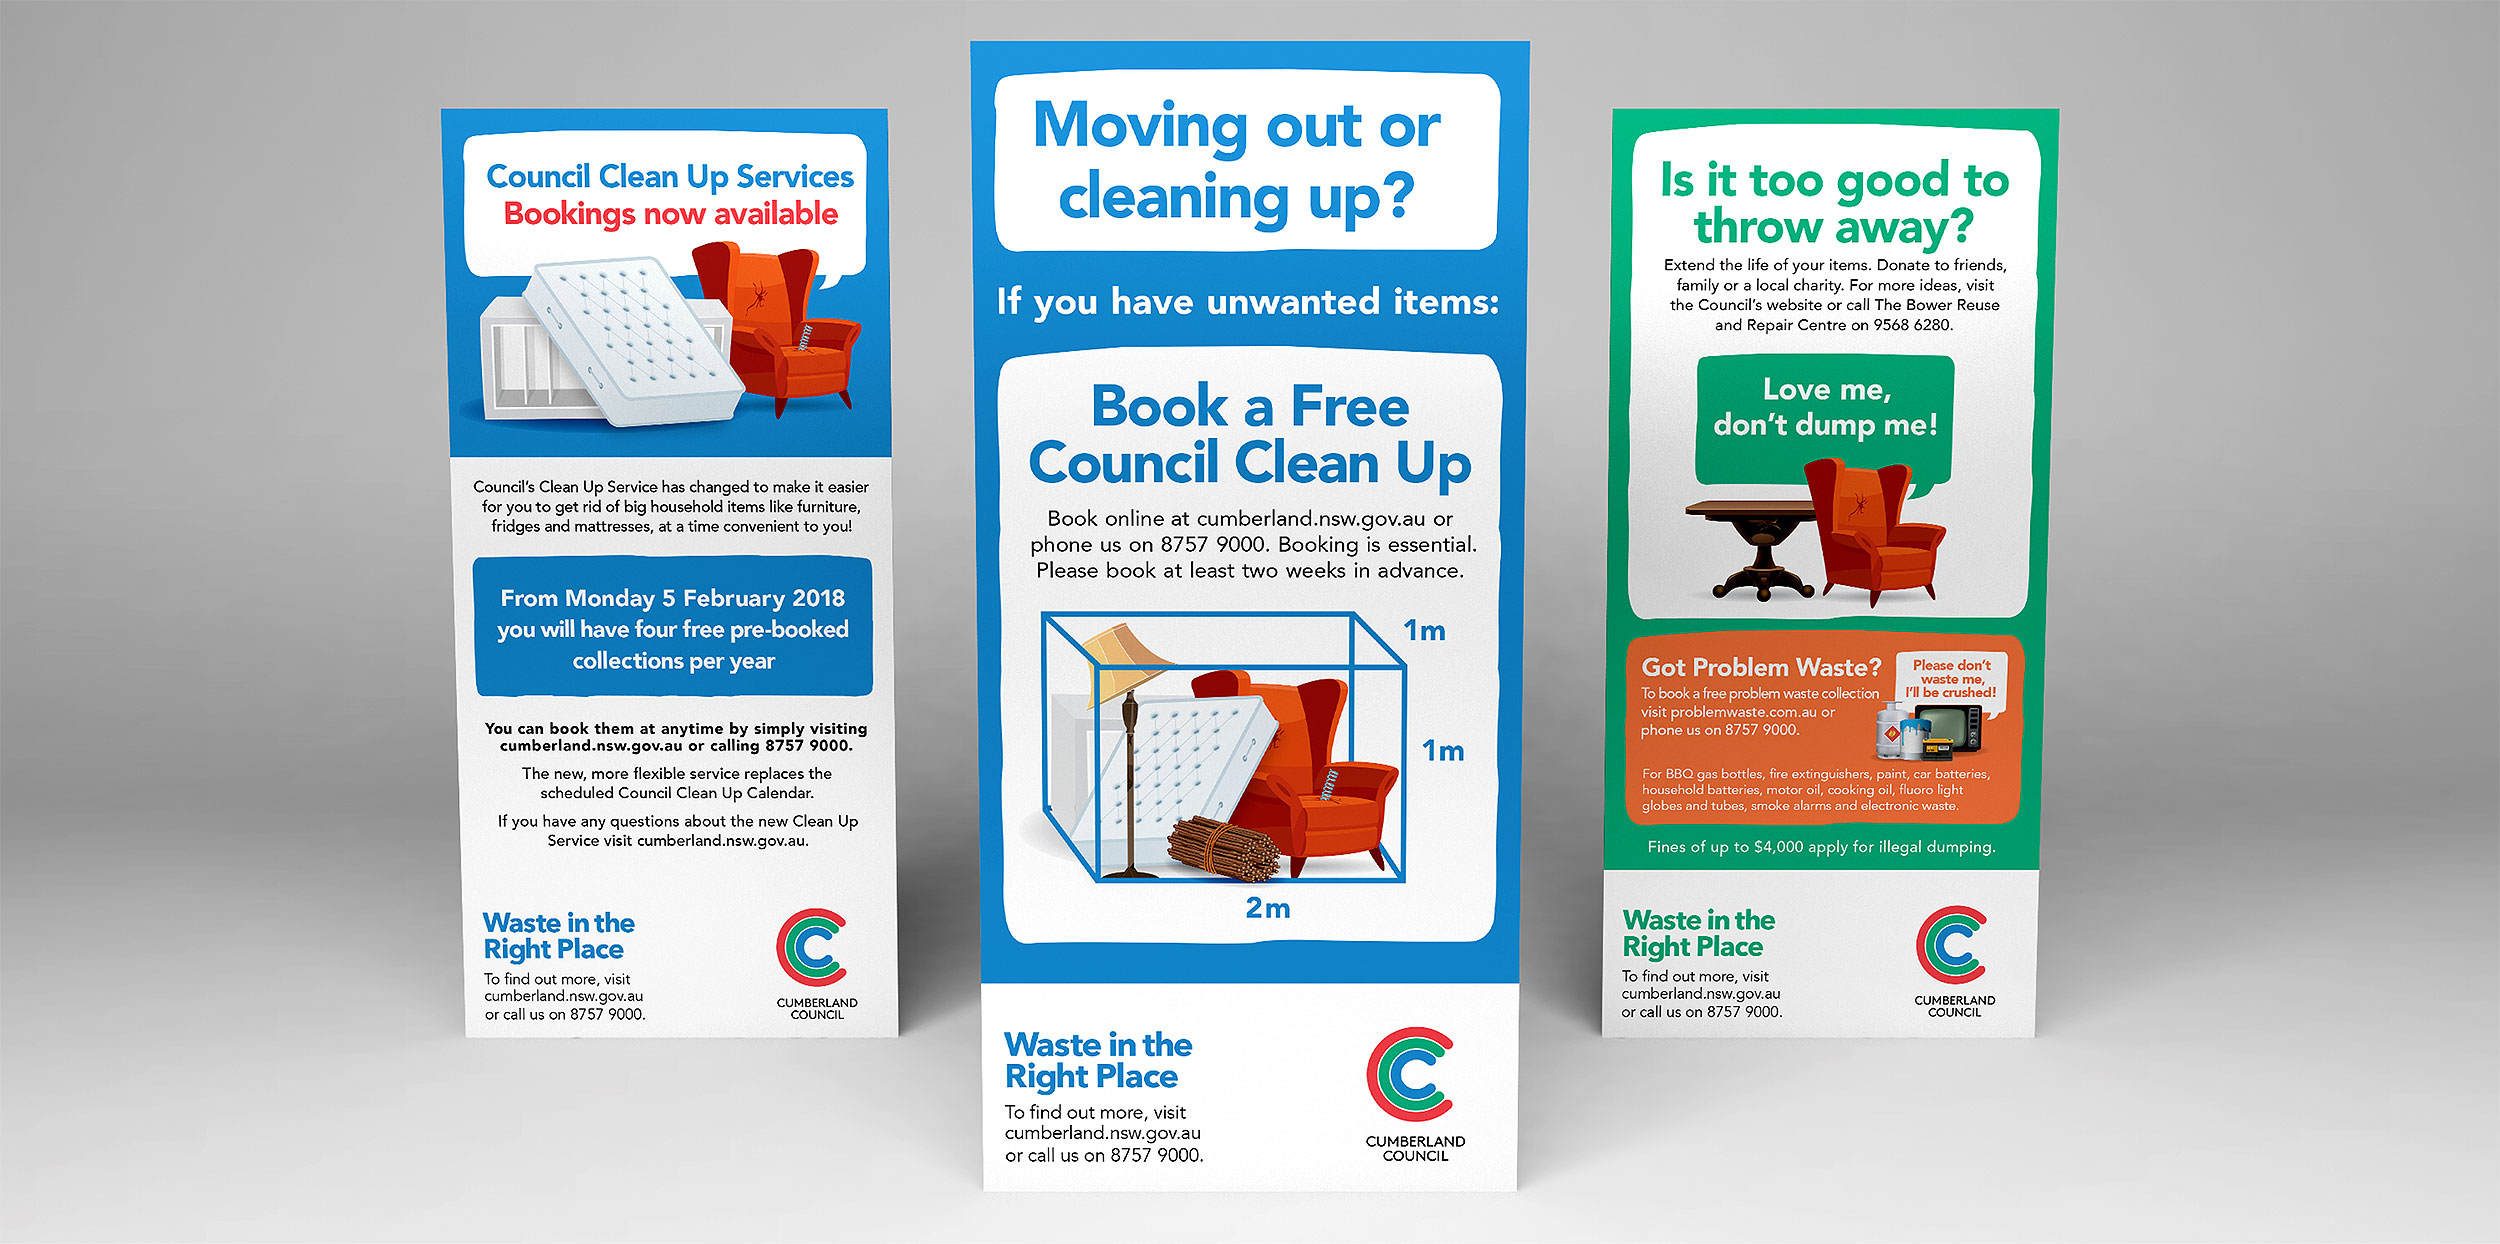 Handle-Branding-Cumberland-Council-NSW-Government-Waste-Education-Resources-Design_08.jpg